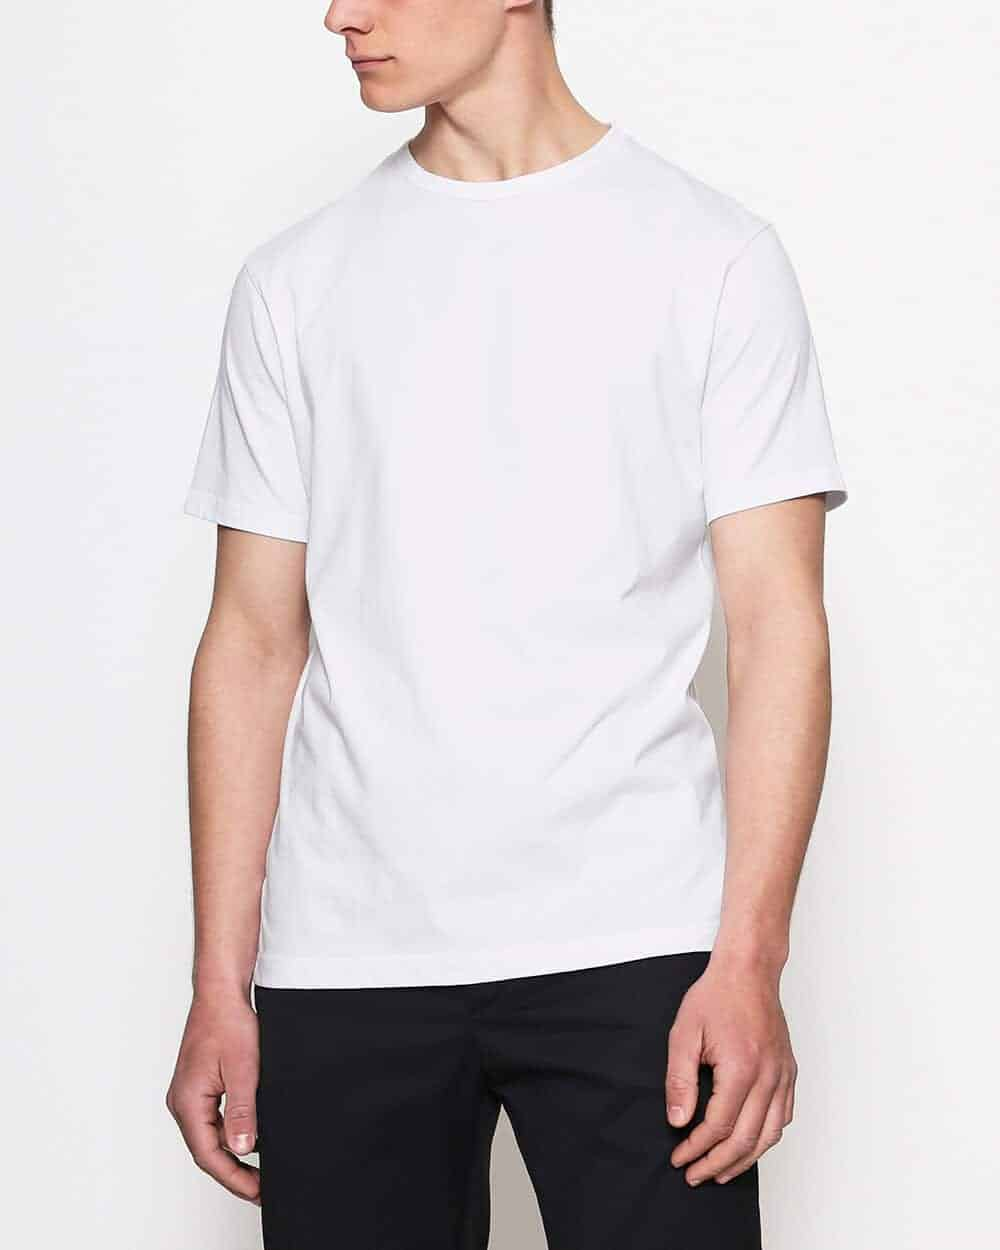 Blanc Essentials T-shirt wit